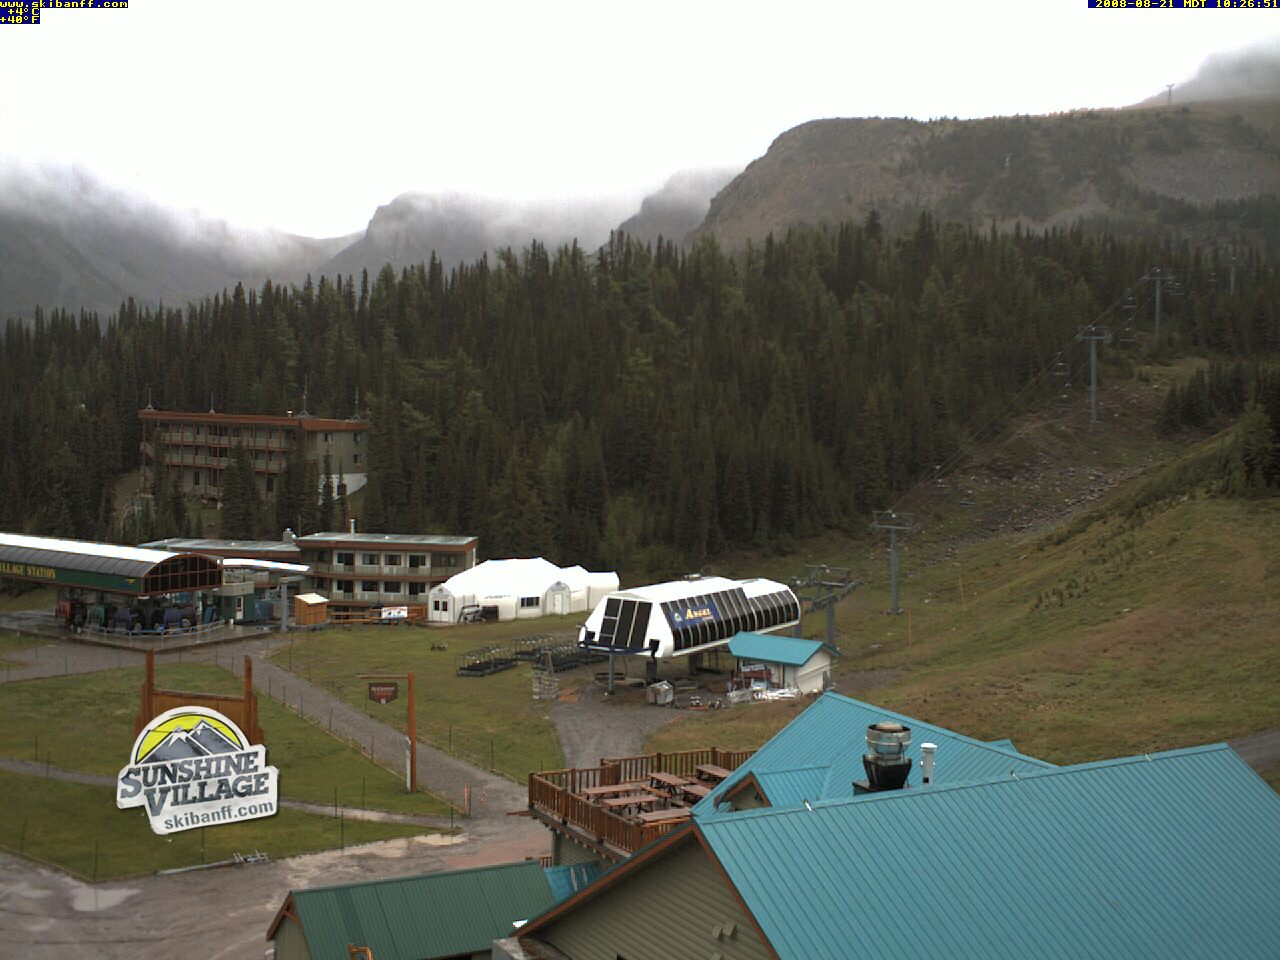 Banf mountain webcam photo 6